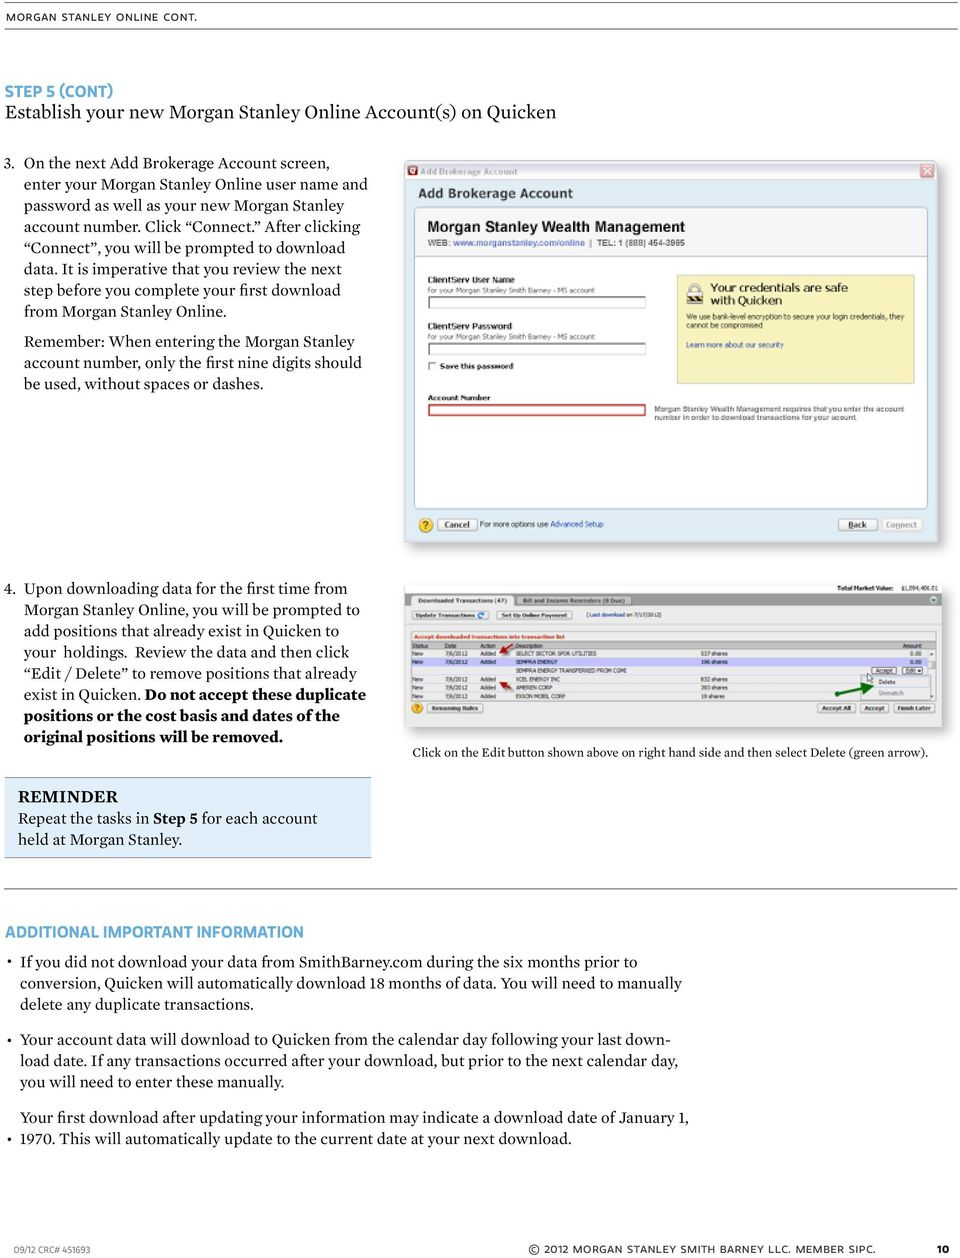 Update Quicken with your Morgan Stanley Online Account Information - PDF